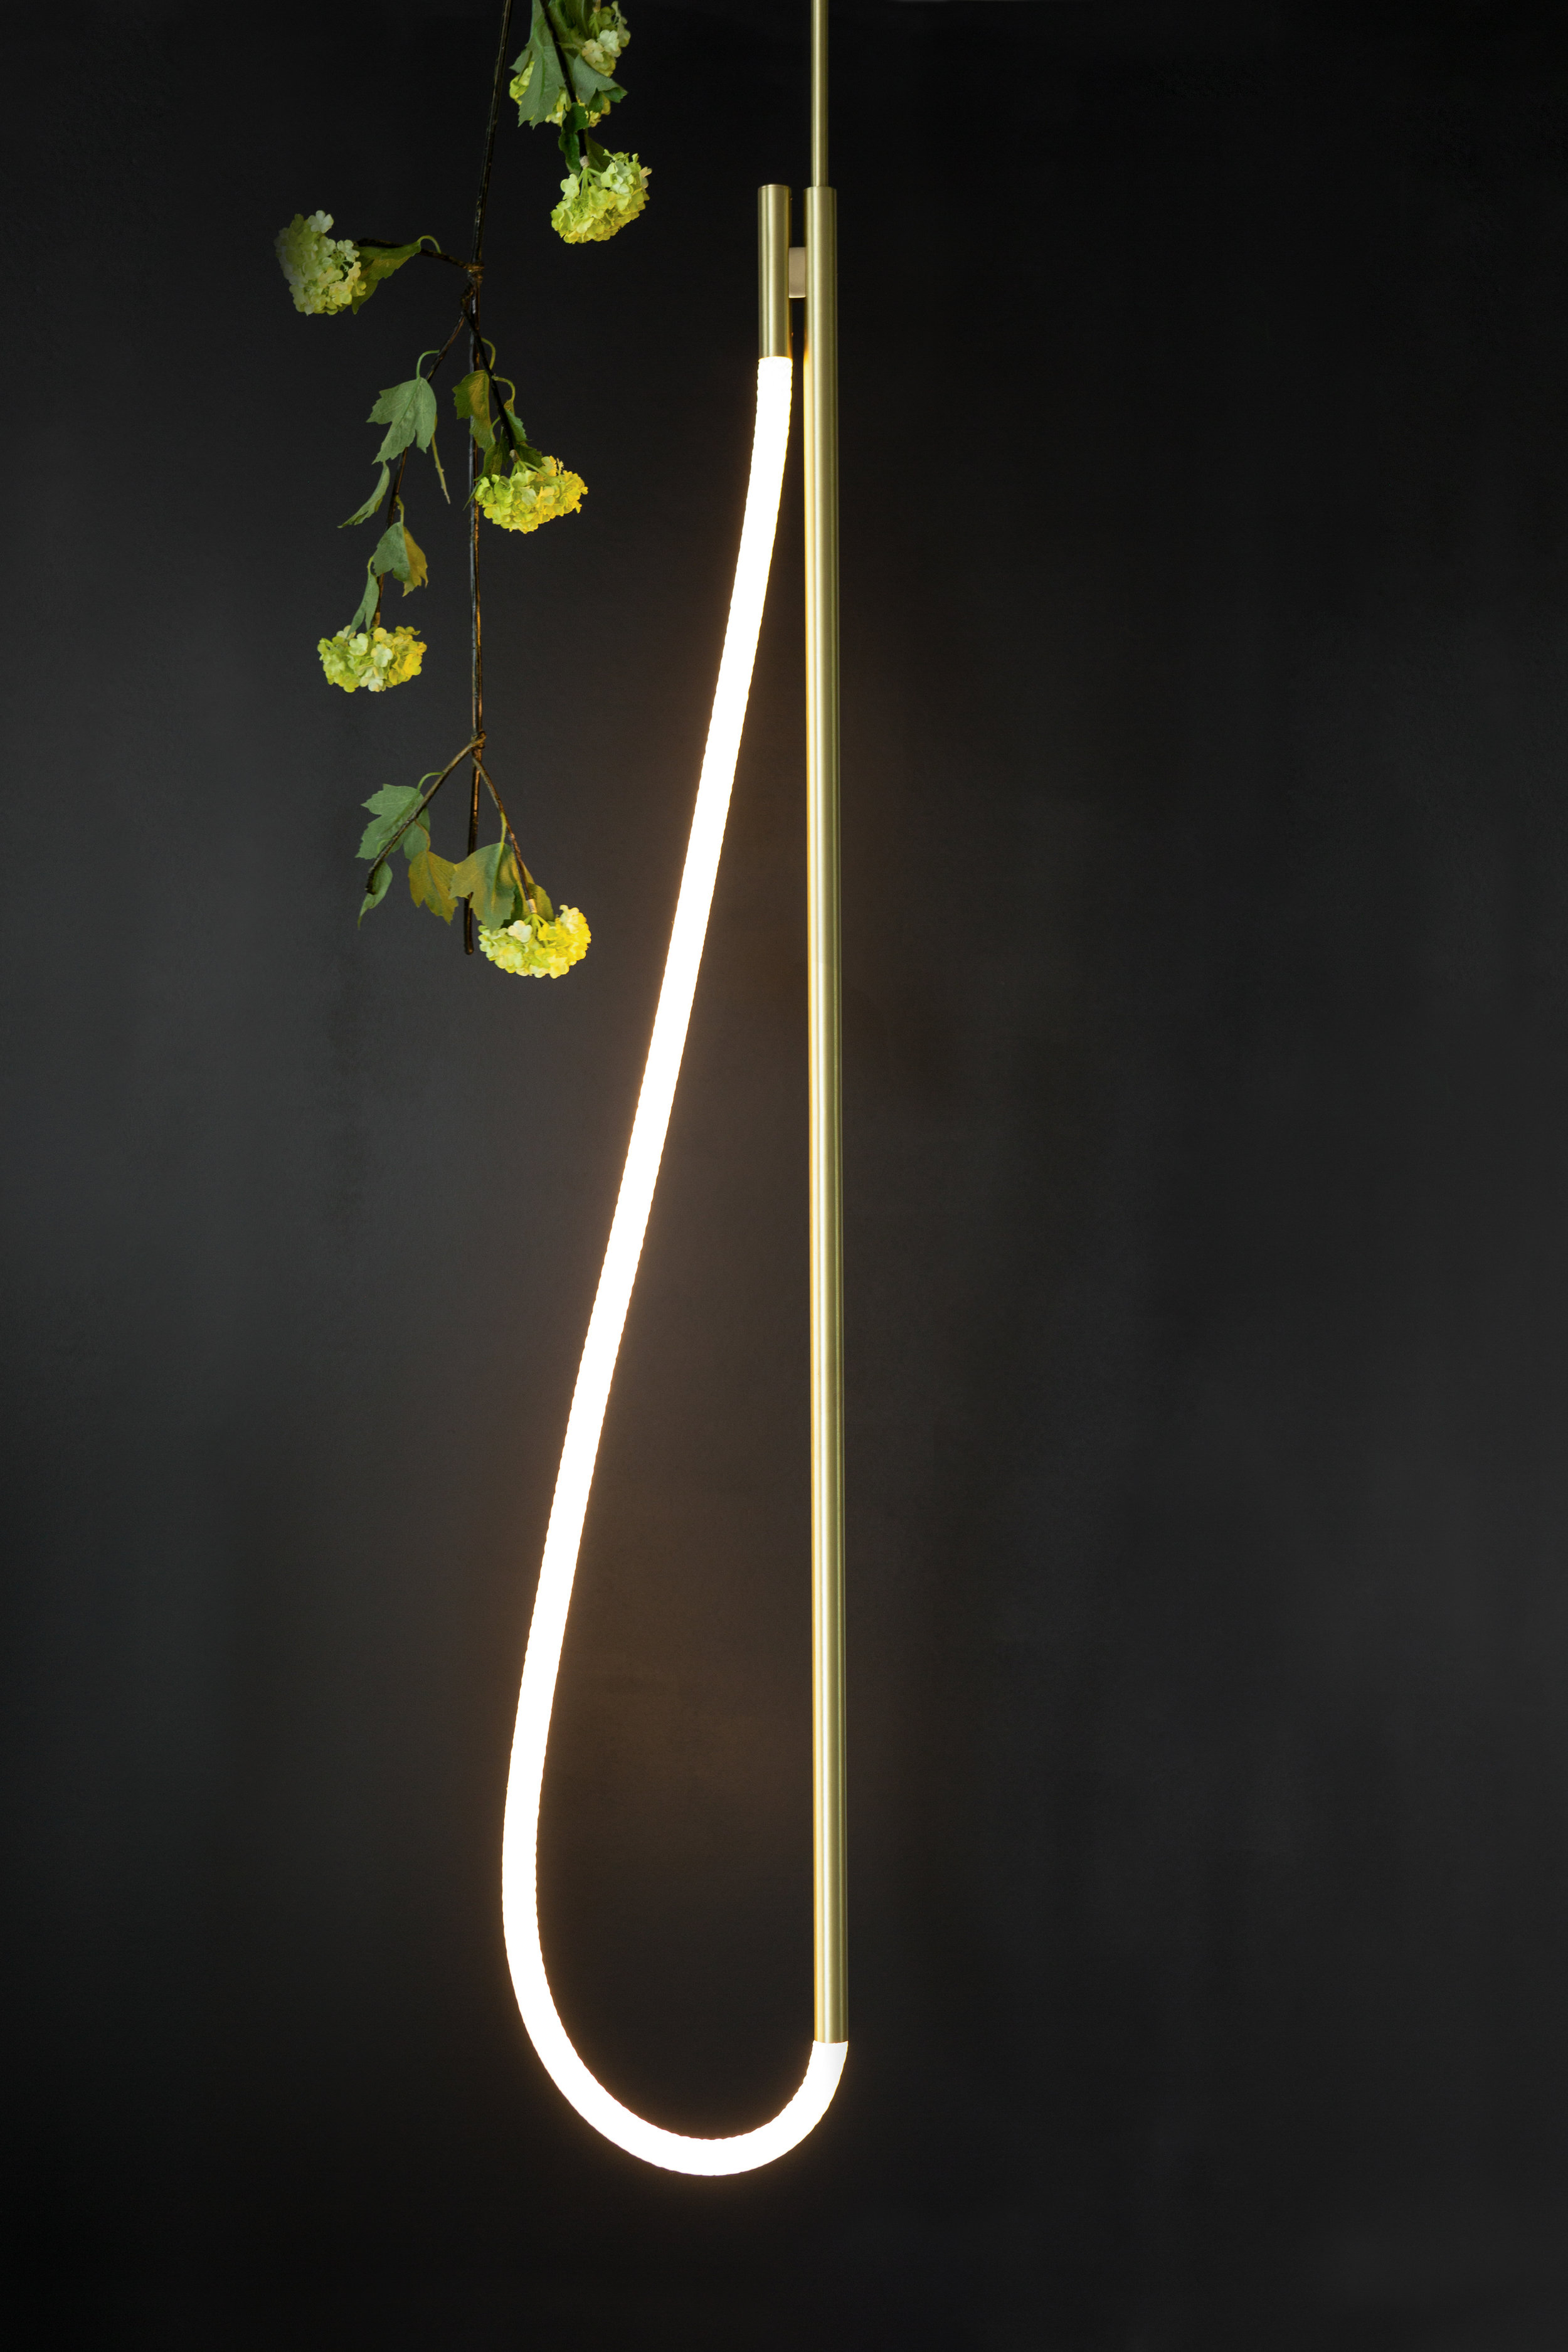 As pictured: 4.5' Artemis Pendant in Satin Brass